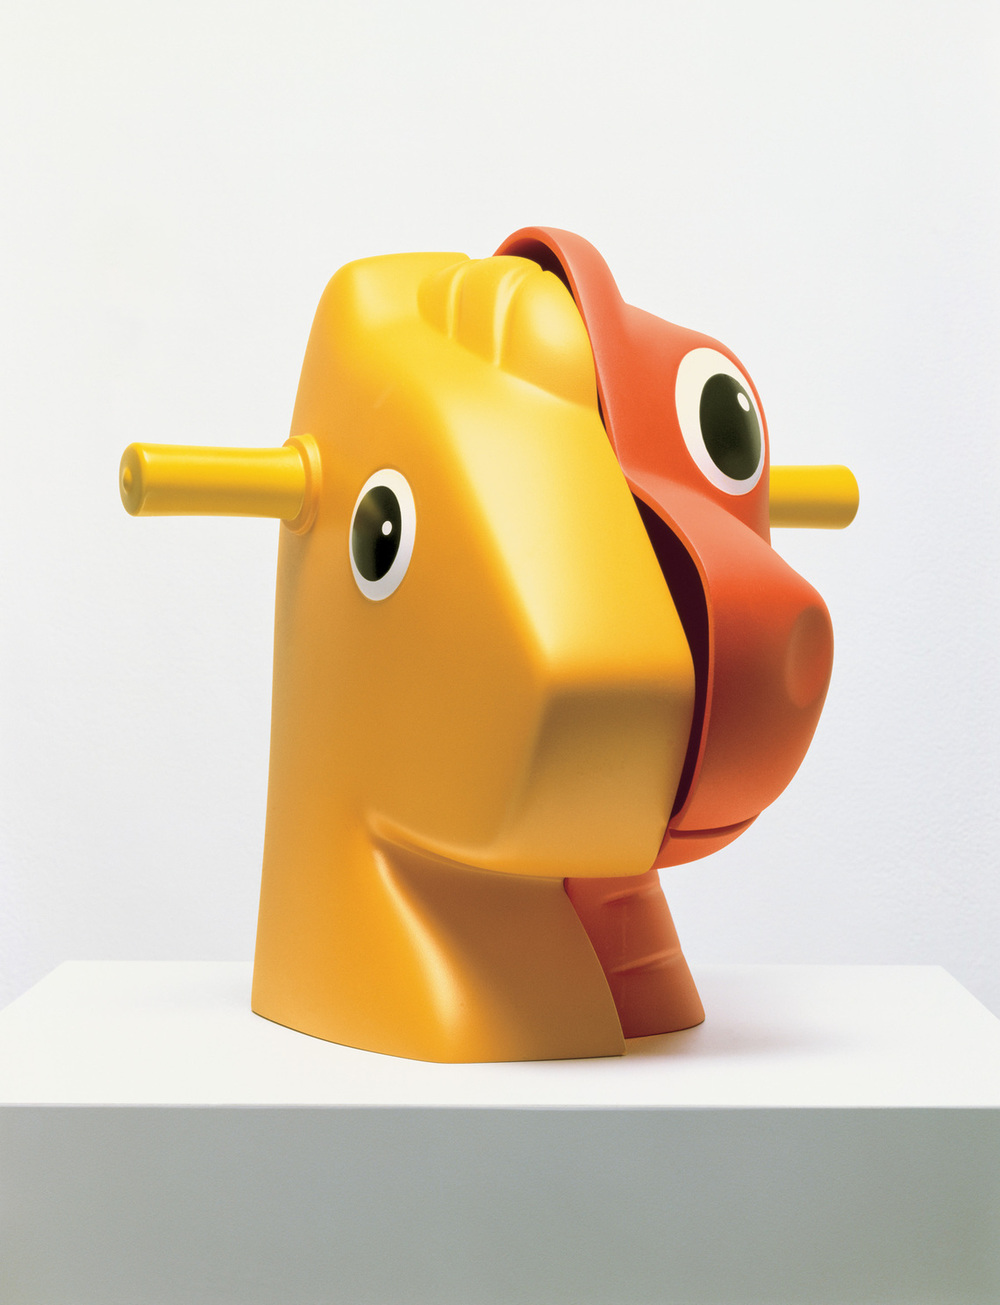 jeff koons // split-rocker (orange/red)  * photo from the whitney museum of american art *